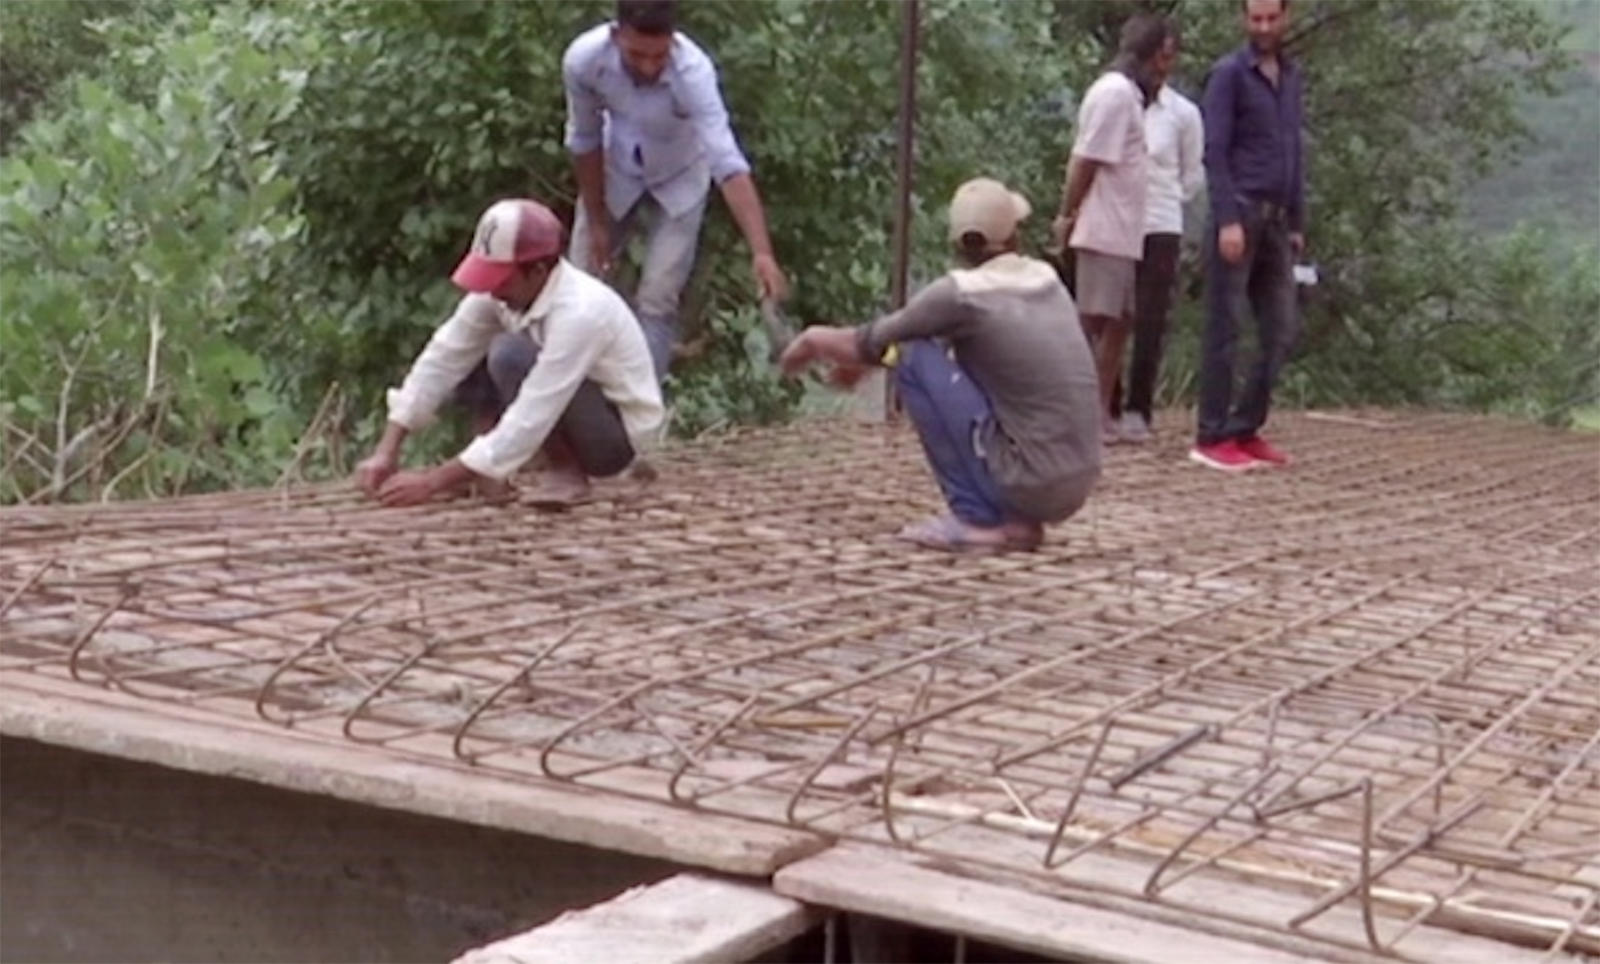 jk-construction-of-bunkers-continues-for-safety-of-locals-in-rajouri